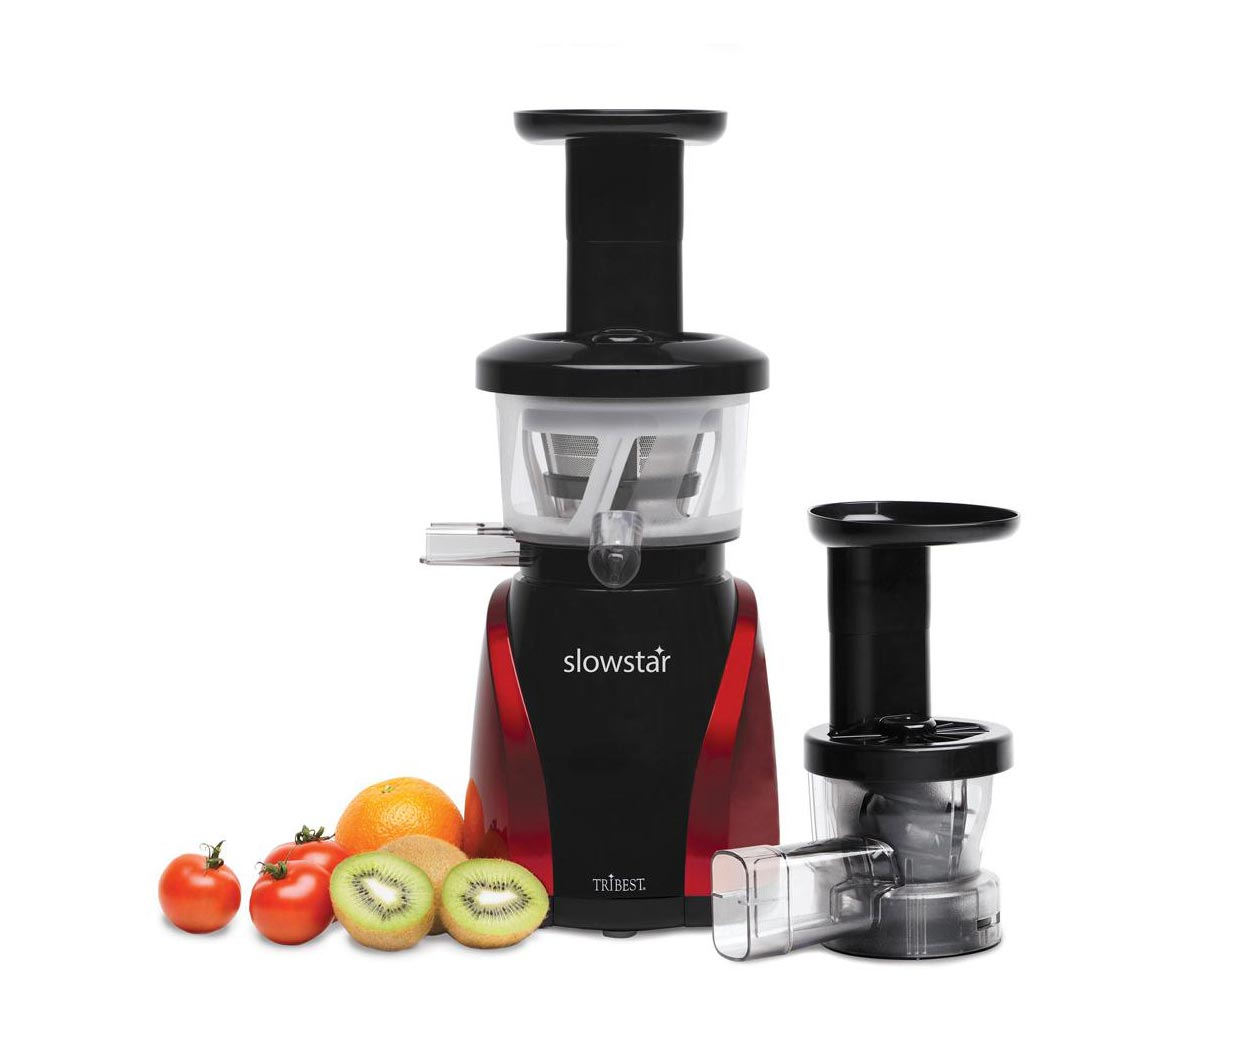 Slow Juicer Test 2018 : Tribest Slowstar Juicer Review. Is this Tribest juicer the best juicer to buy?